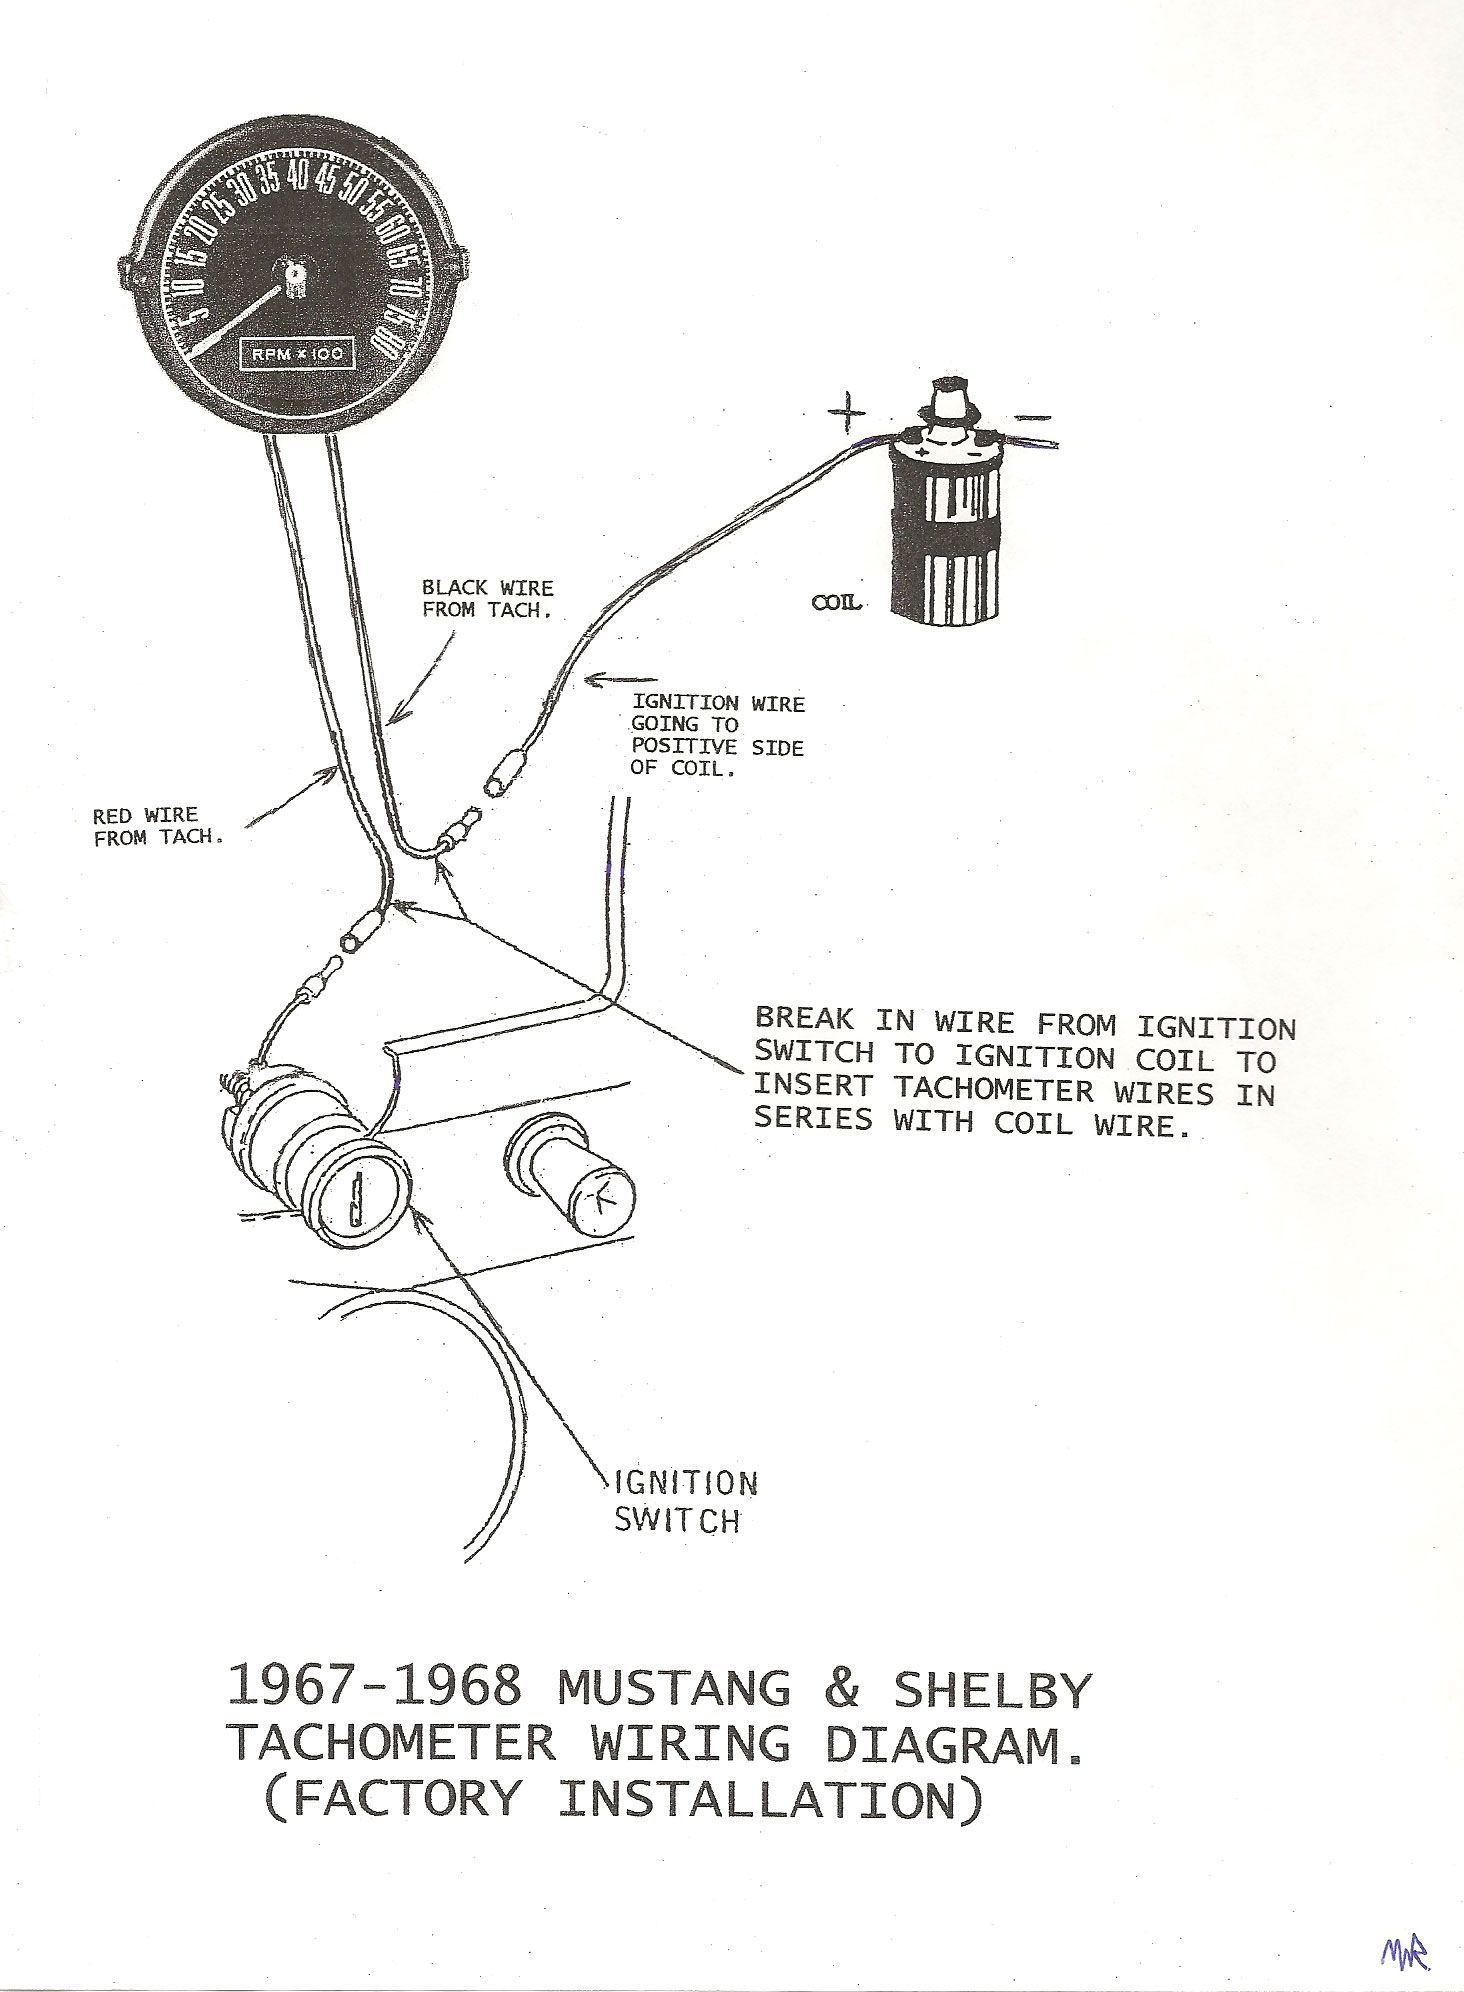 hight resolution of 1968 mustang tach wiring diagram wiring diagram expert 67 mustang gt tachometer wiring